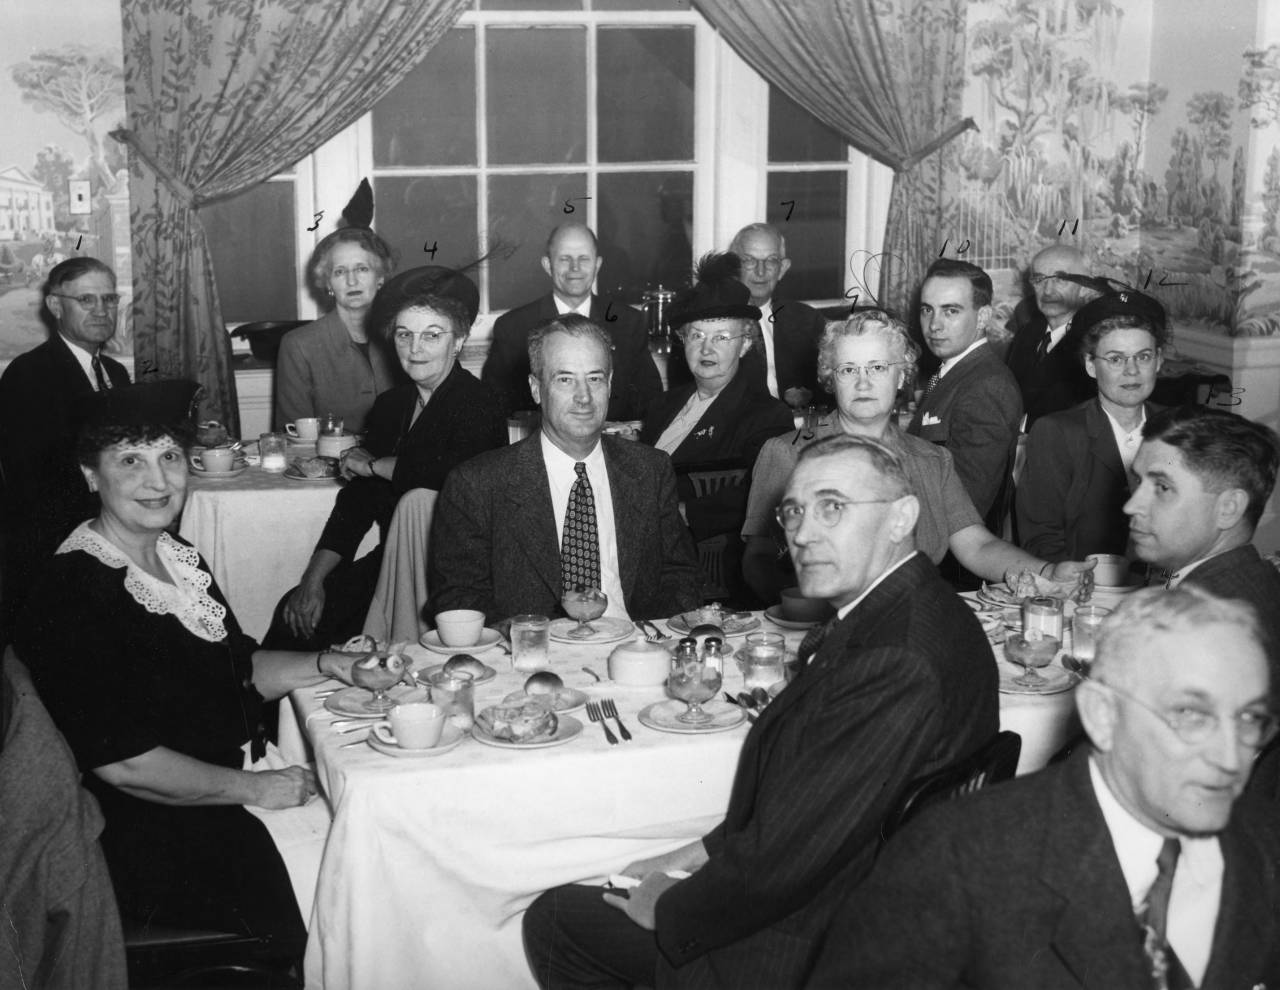 "Regional Meeting of Chicken of Tomorrow Contest Leaders Subjects: Poultry Item identifier: ua023_007-007-bx0022-002-002 Created Date: 1949-10 Description: Transcribed from back: Oct. 1949 Sir Walter Hotel-Raleigh, N. C. Regional Meeting of ""Chicken of Tomorrow"" contest leaders. 1- C. J [illegible] 2. Mrs. R. S. Dearstyne 3-4 [blank] 5-H. L. Shrader 6-R. S. Deastyne 7-I. O Schaub 8-Mrs. Schaub 9-Mrs. C. F. Parrish 10-[blank] 11-Dr. Peirce 12-Mrs. O. E. Golf 13-Ted H. Ash - W. Va. 14-Peterkin - S.C. 15-[illegible]"